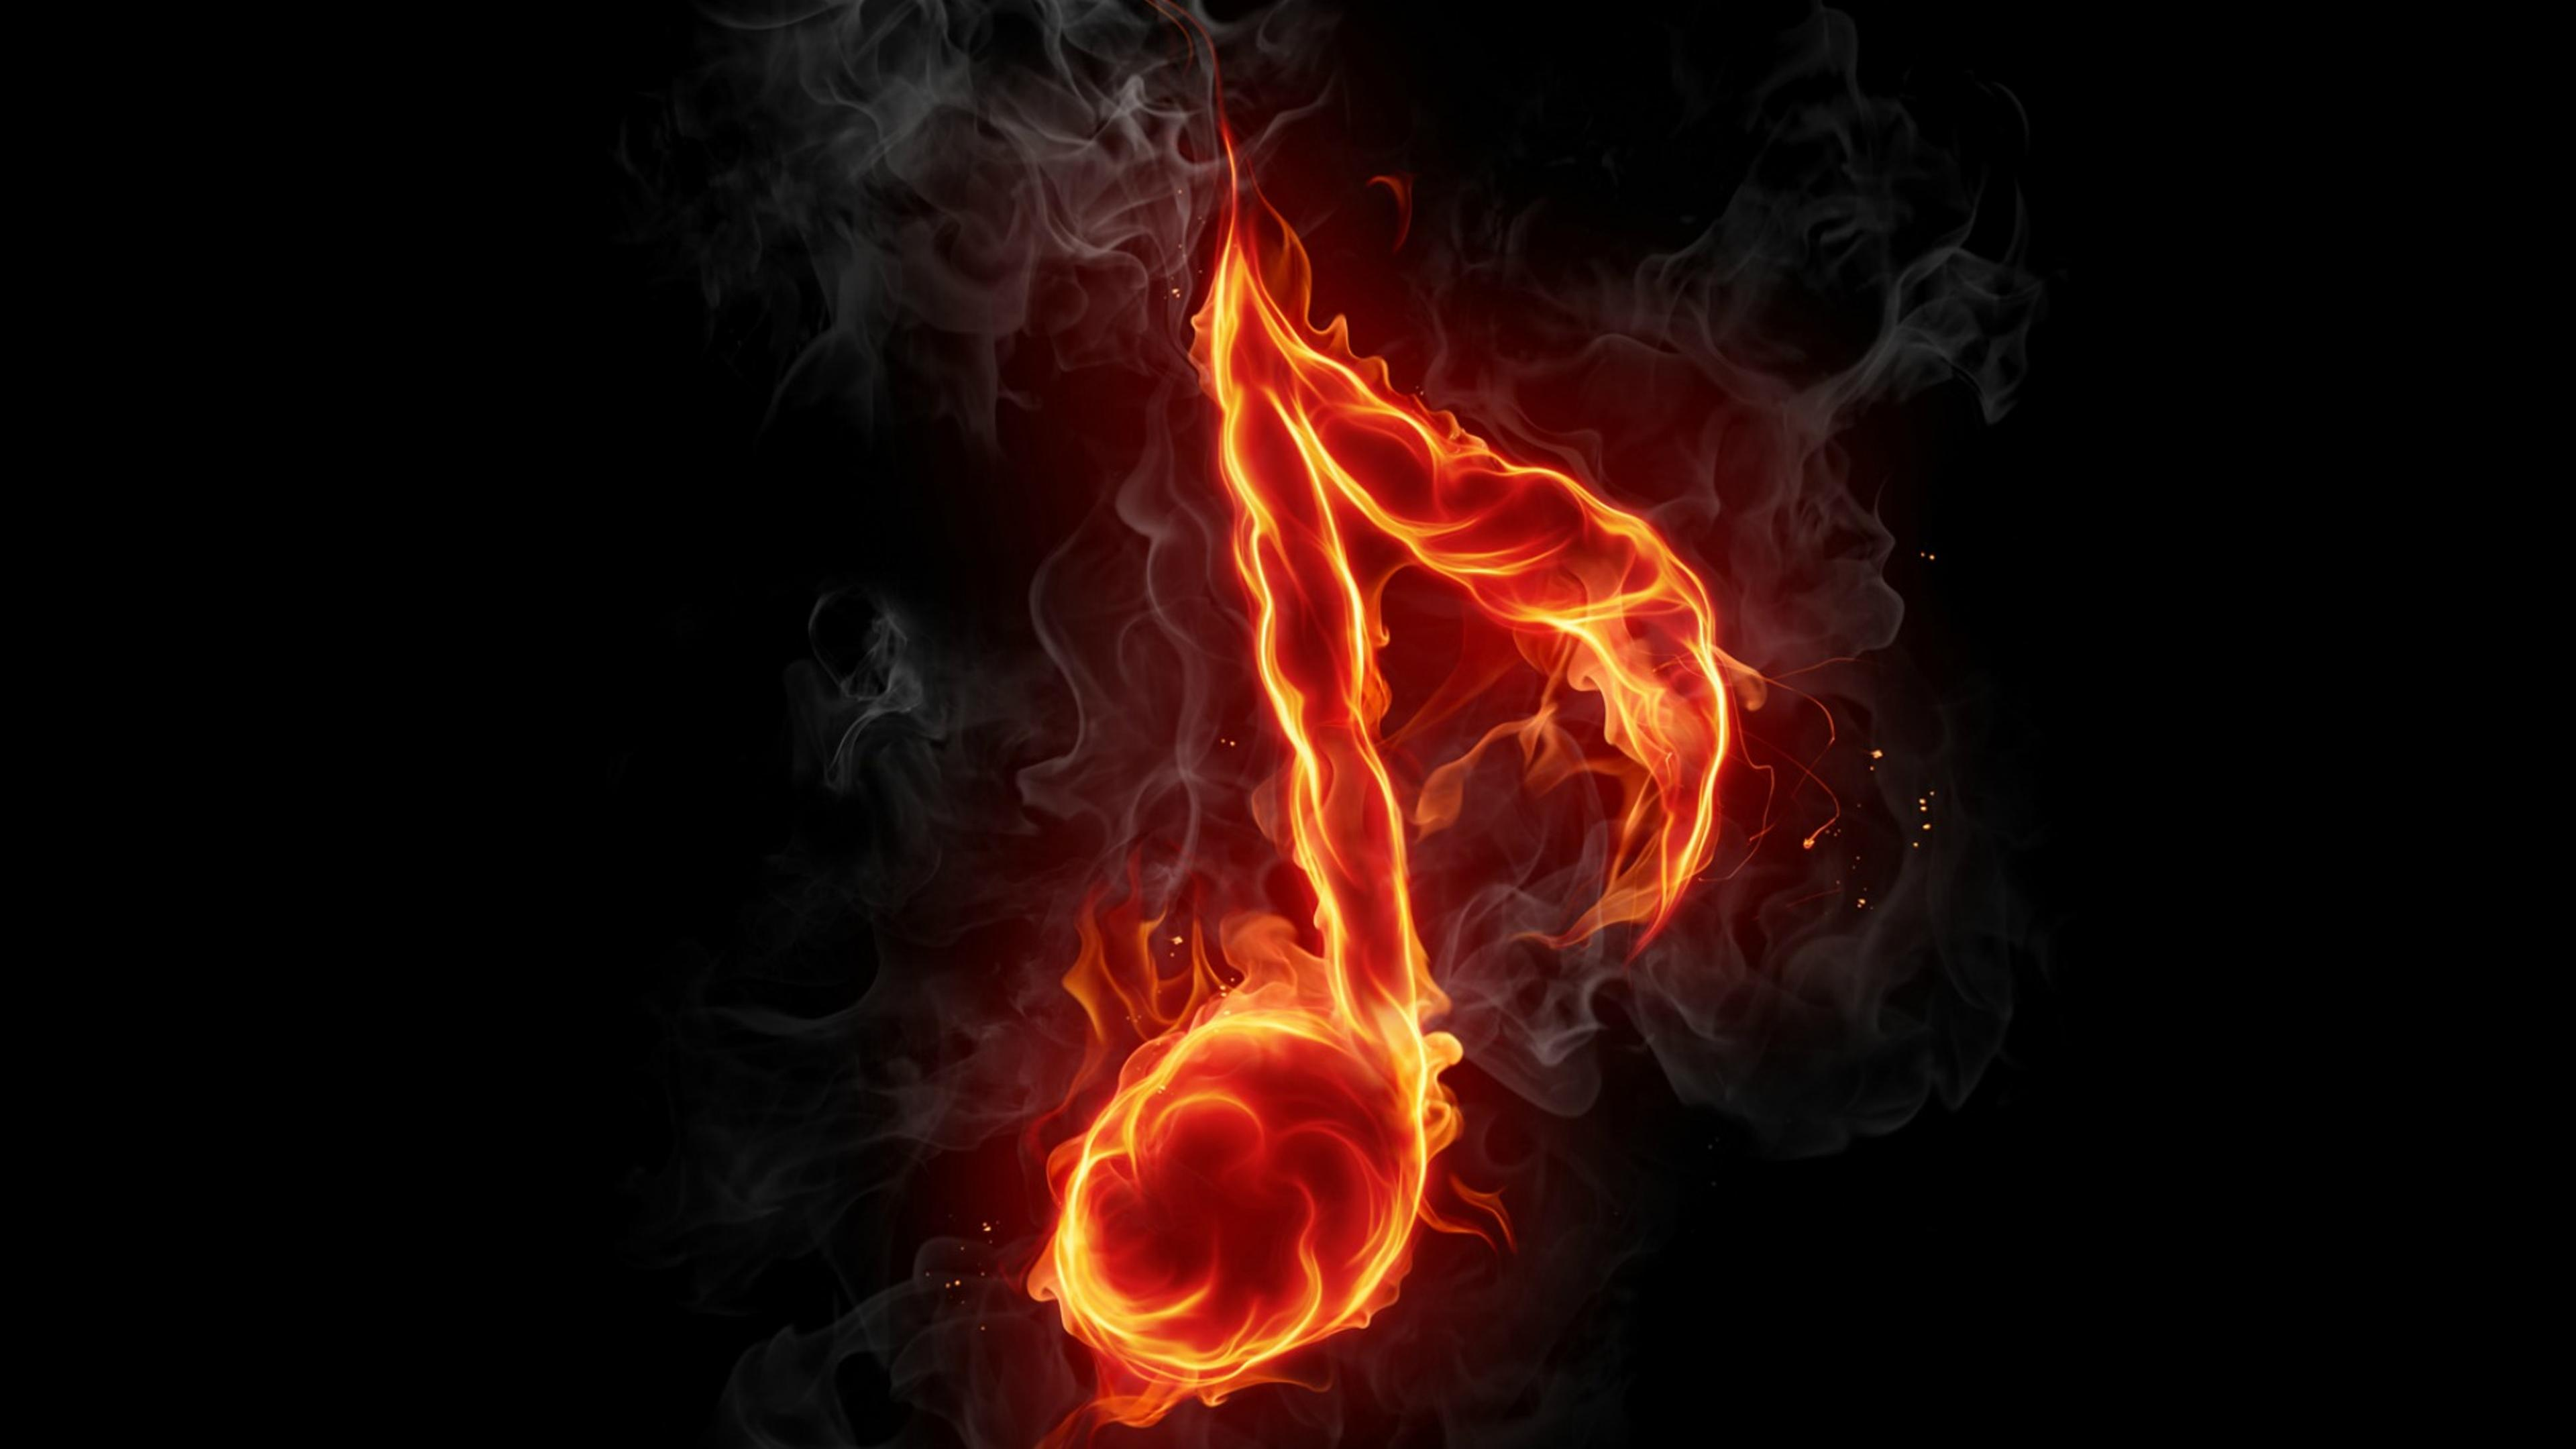 Download Wallpaper 3840x2160 A Musical Note In Flames On The Black Background